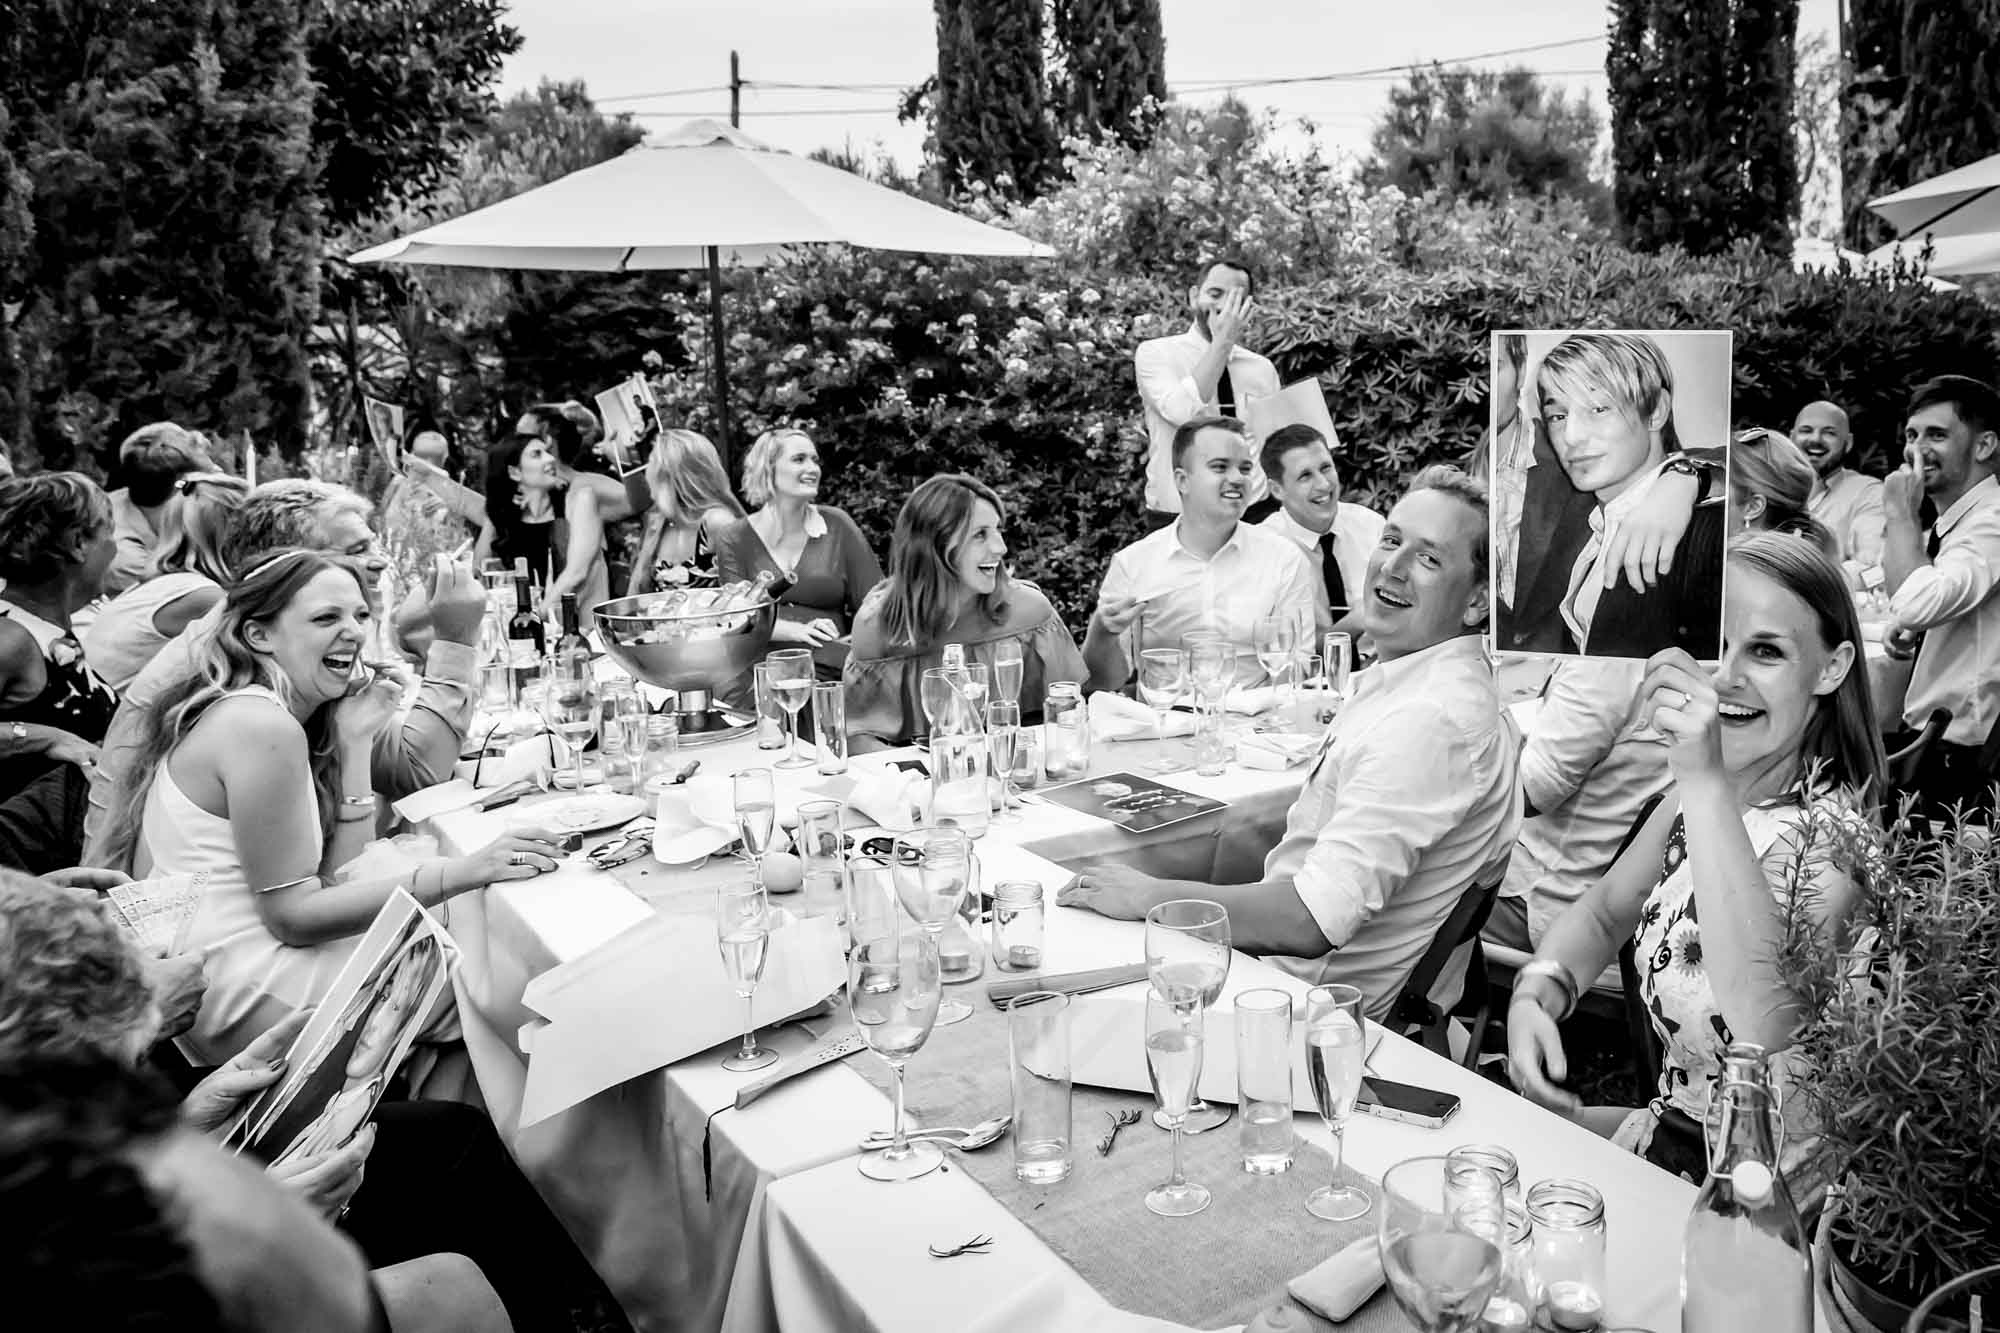 Photos of the groom are passed around during the best man's speech at the finca wedding captured by Mallorca wedding photographer Graham Warrellow